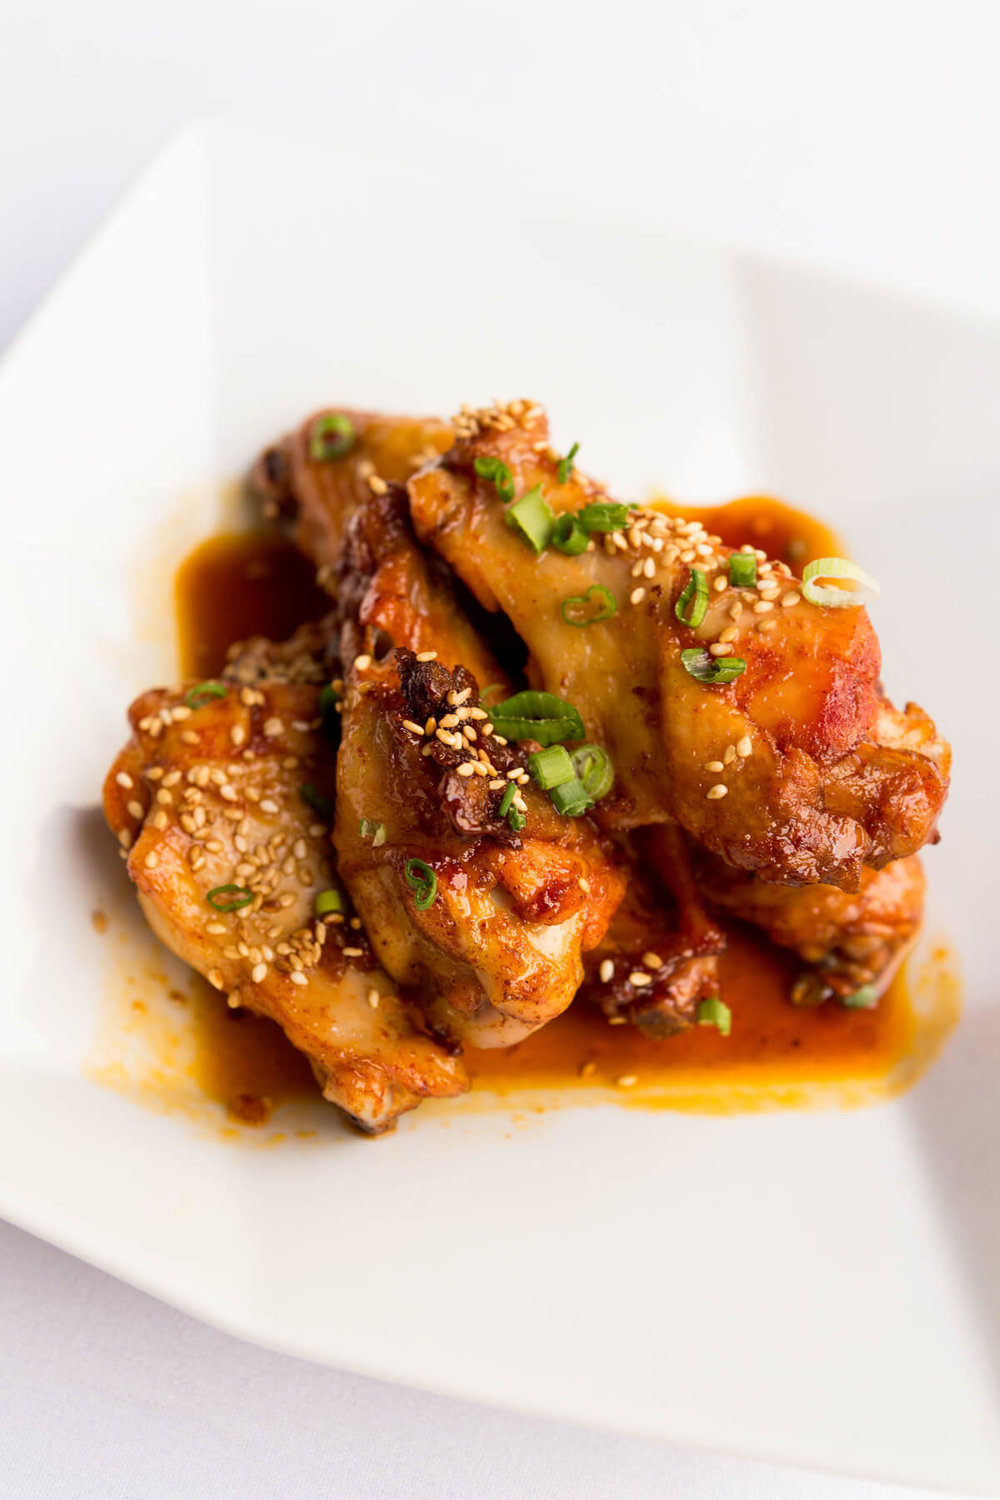 Honey-baked-Garlic-wings.jpg